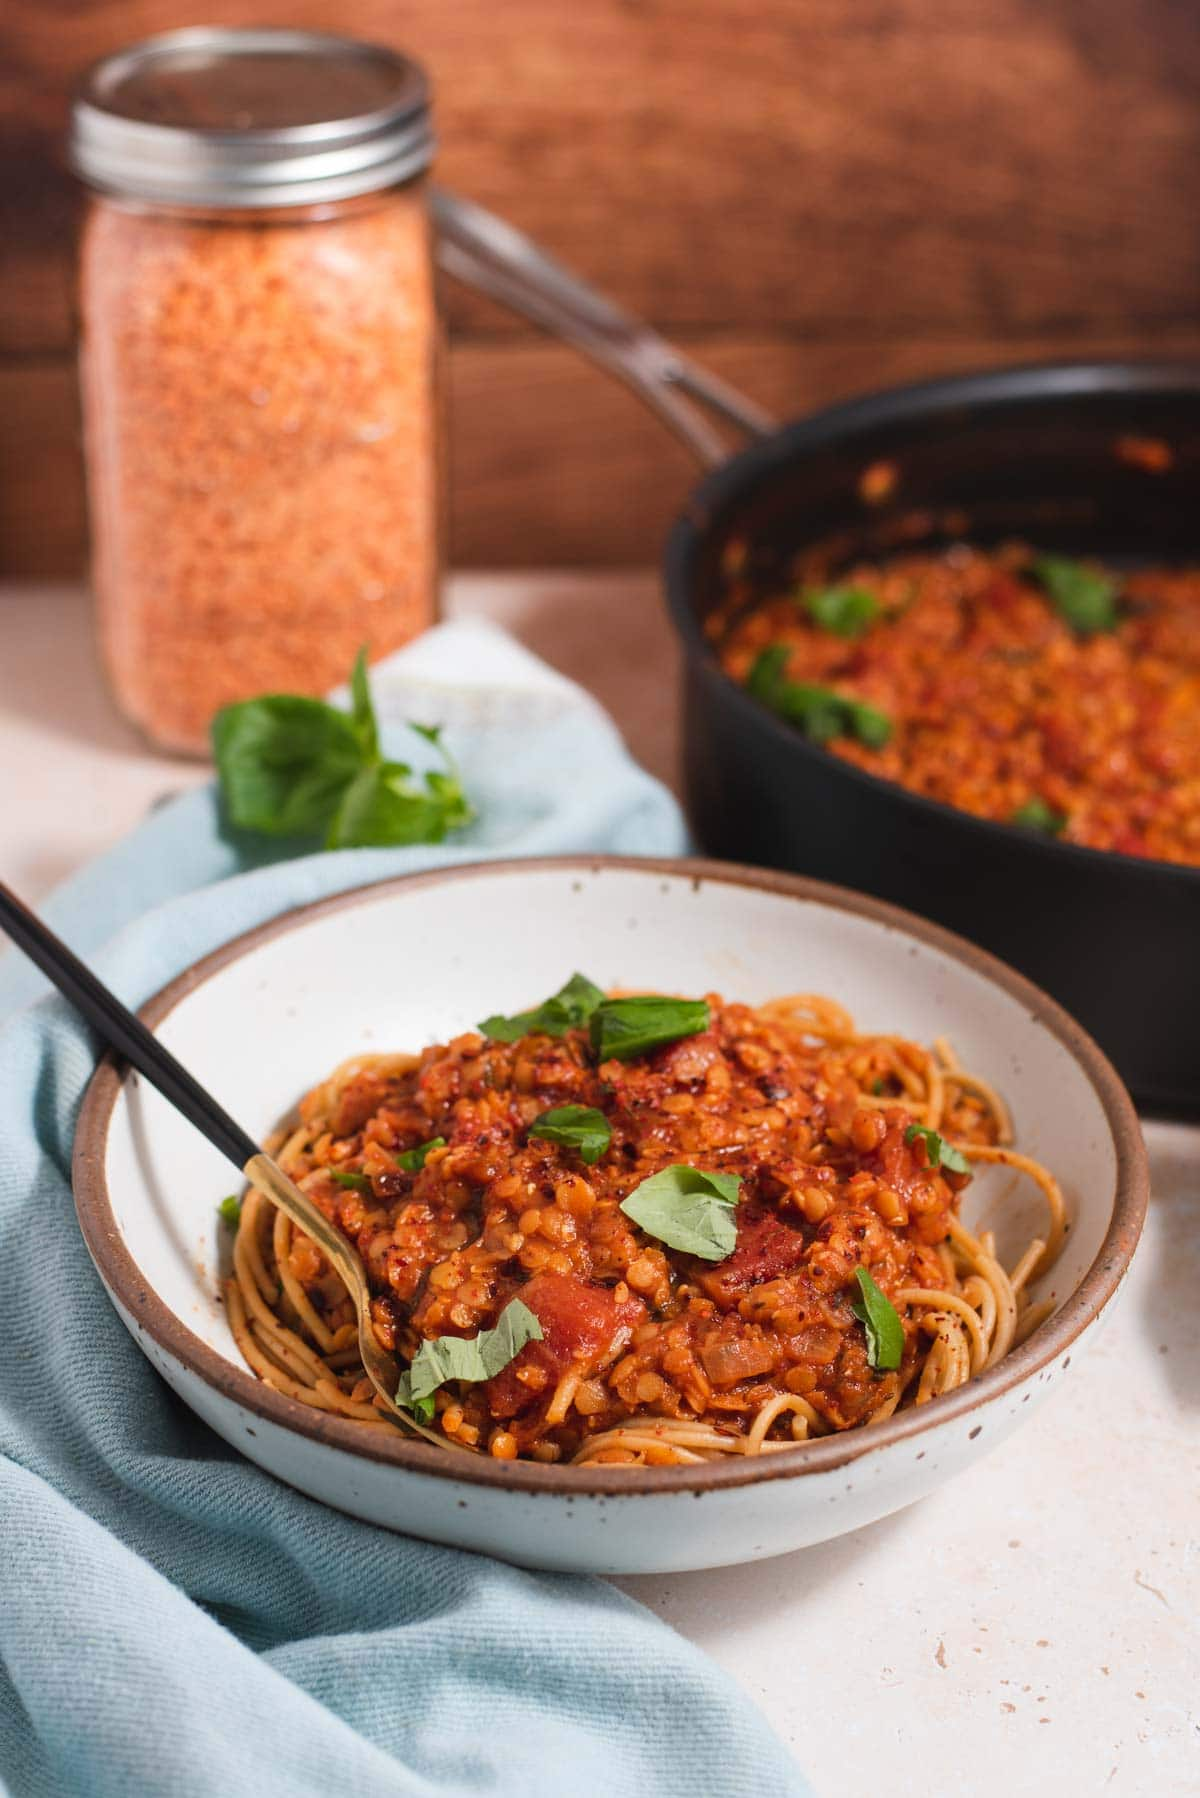 Side view of white bowl filled with spaghetti and a jar of red lentils in the background